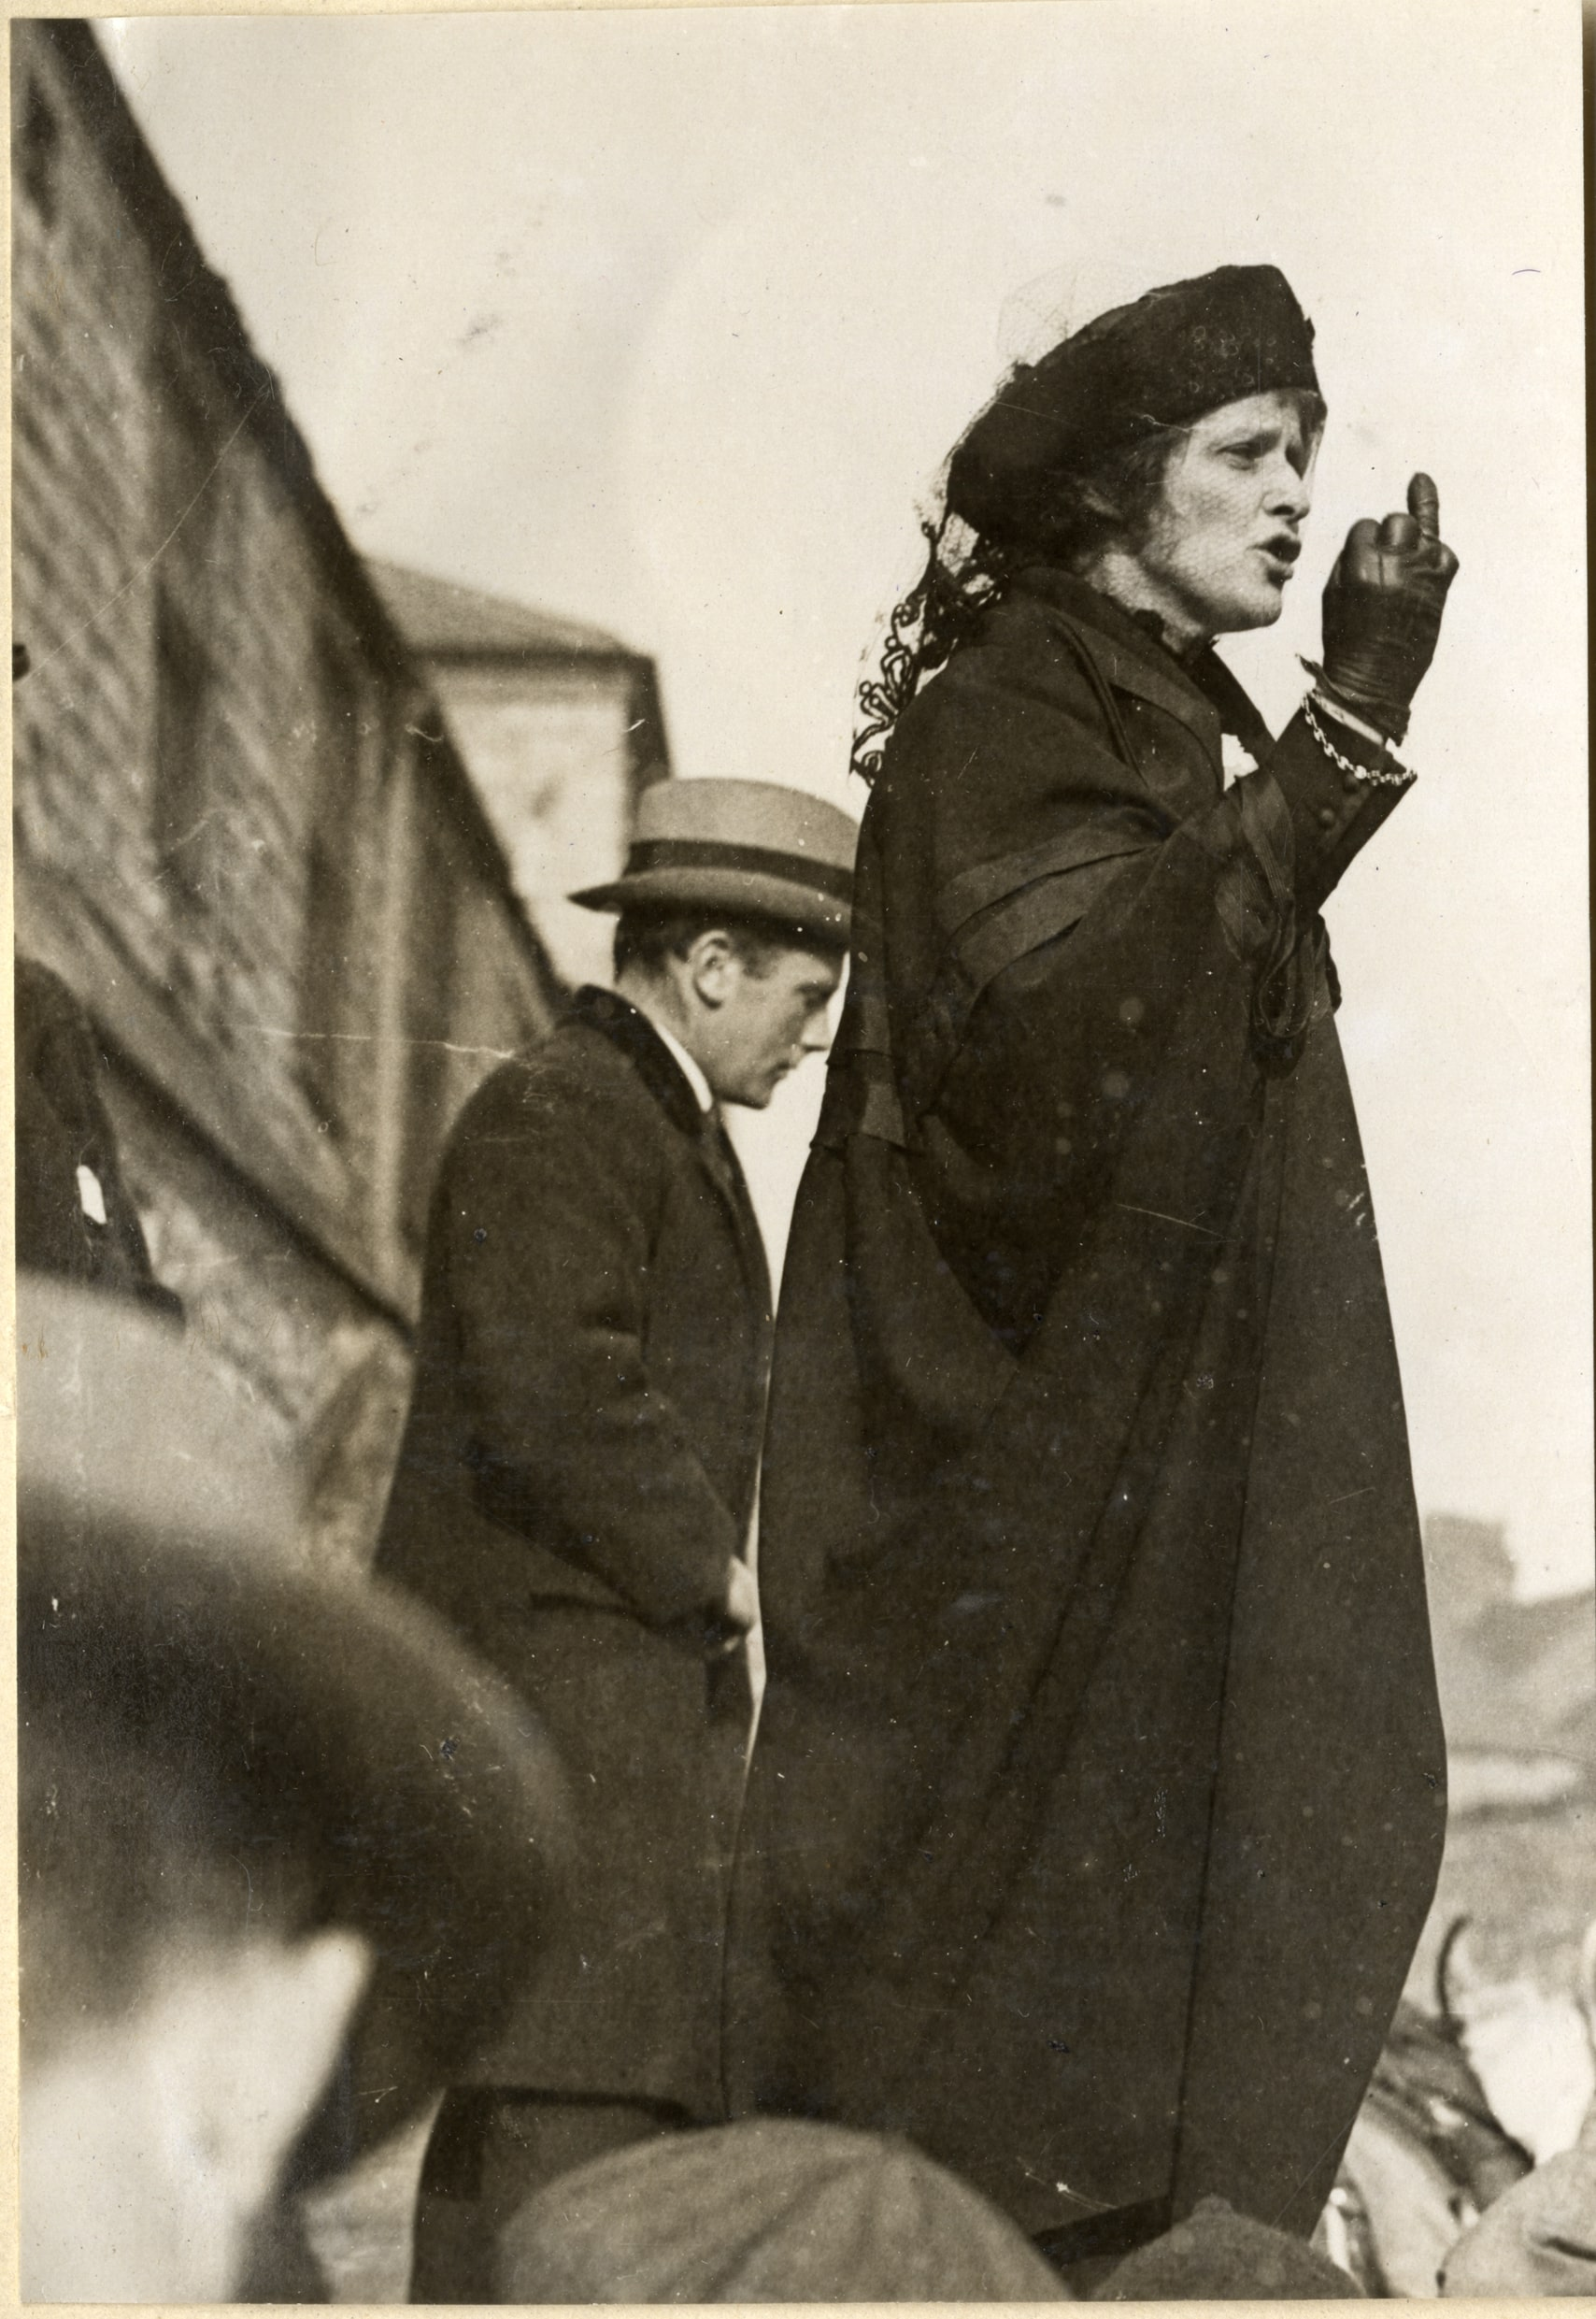 A photograph of Nancy Astor campaigning in 1919.